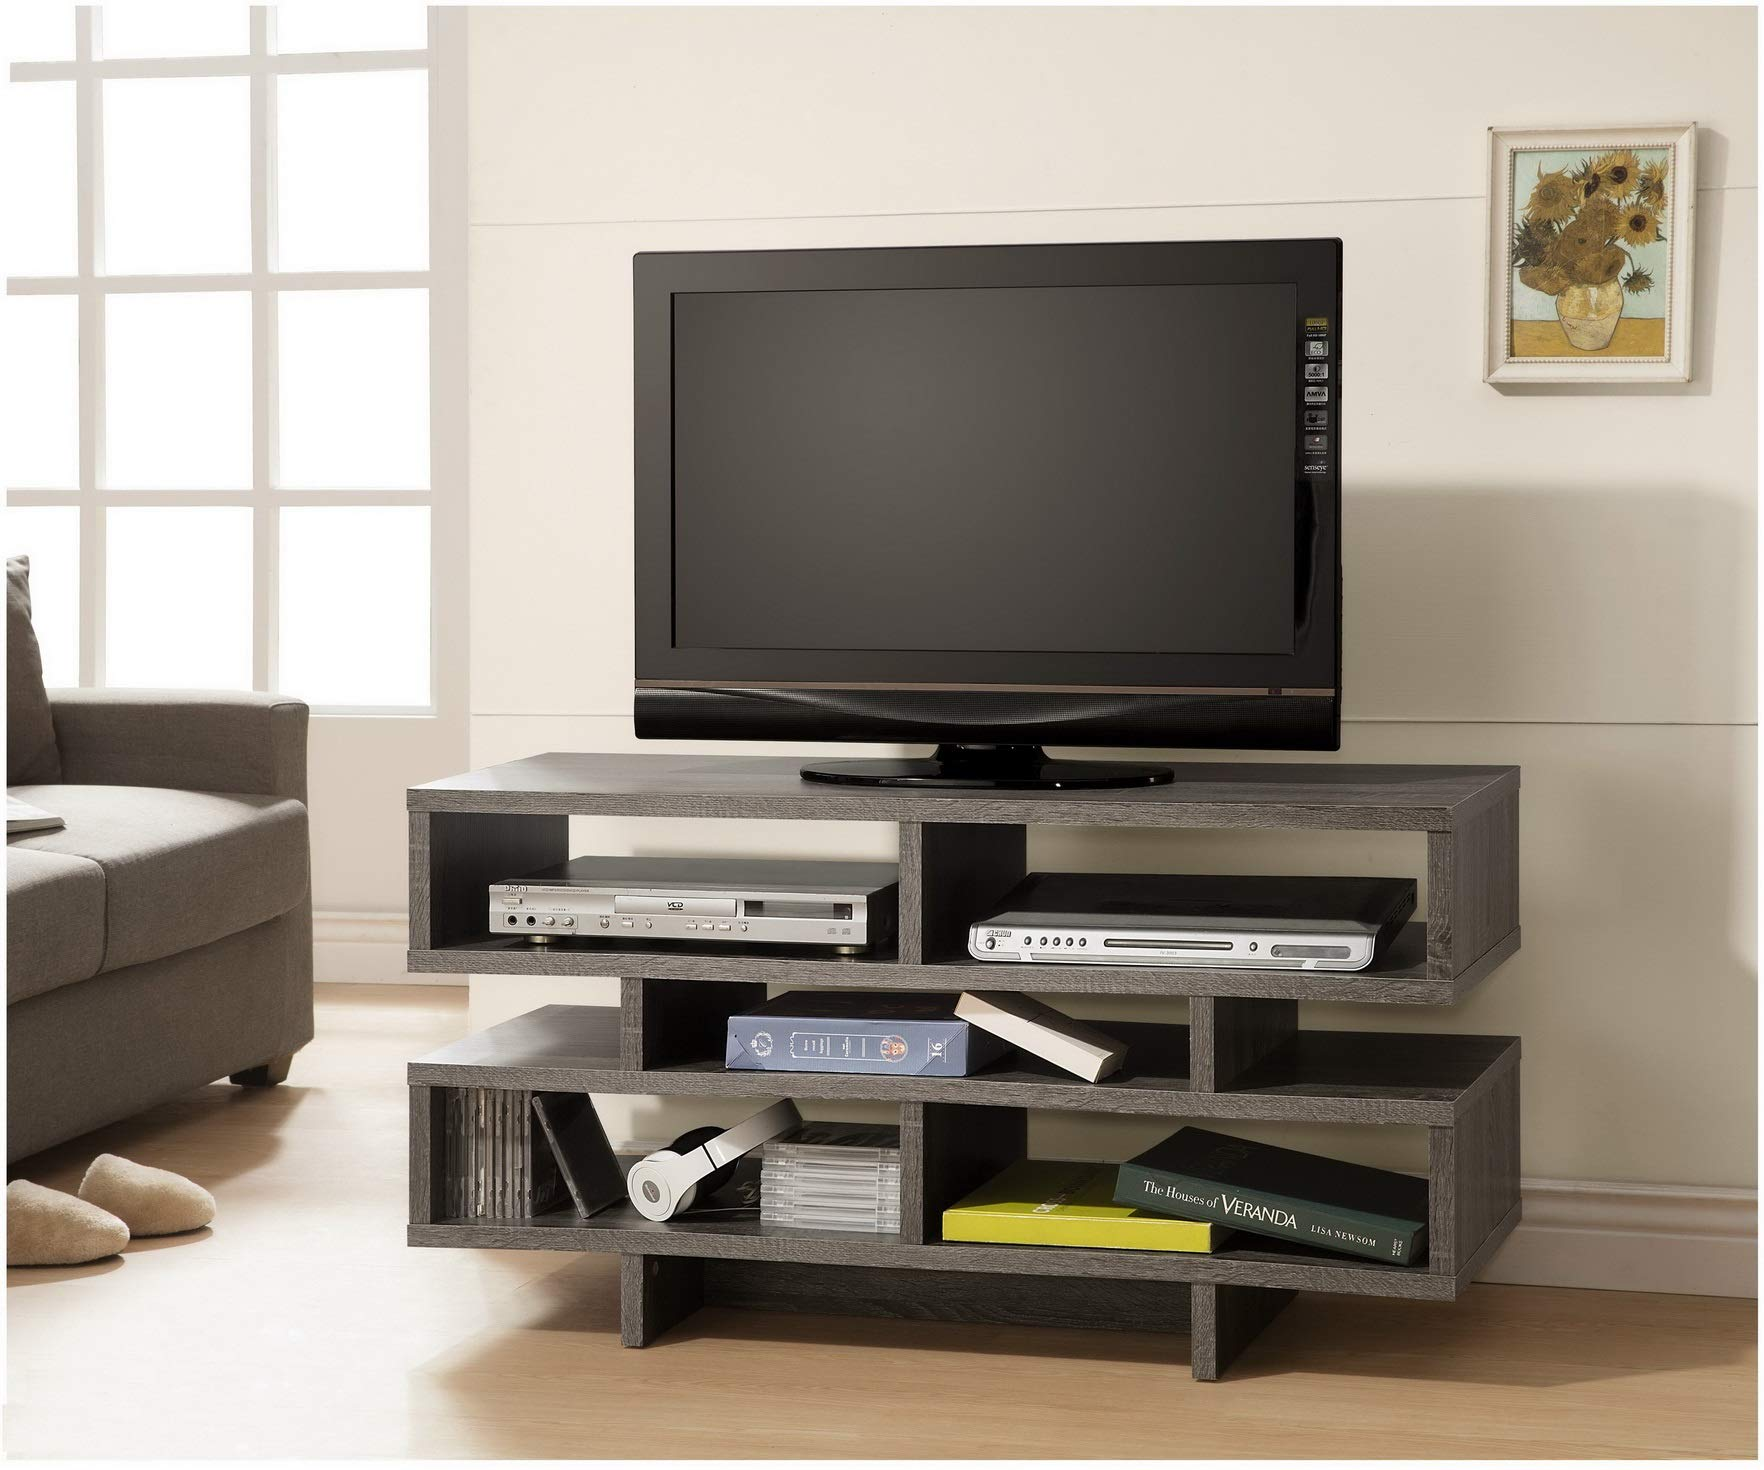 Weathered Grey Reclaimed-Look Finish TV Console Entertainment Stand with Open Shelves